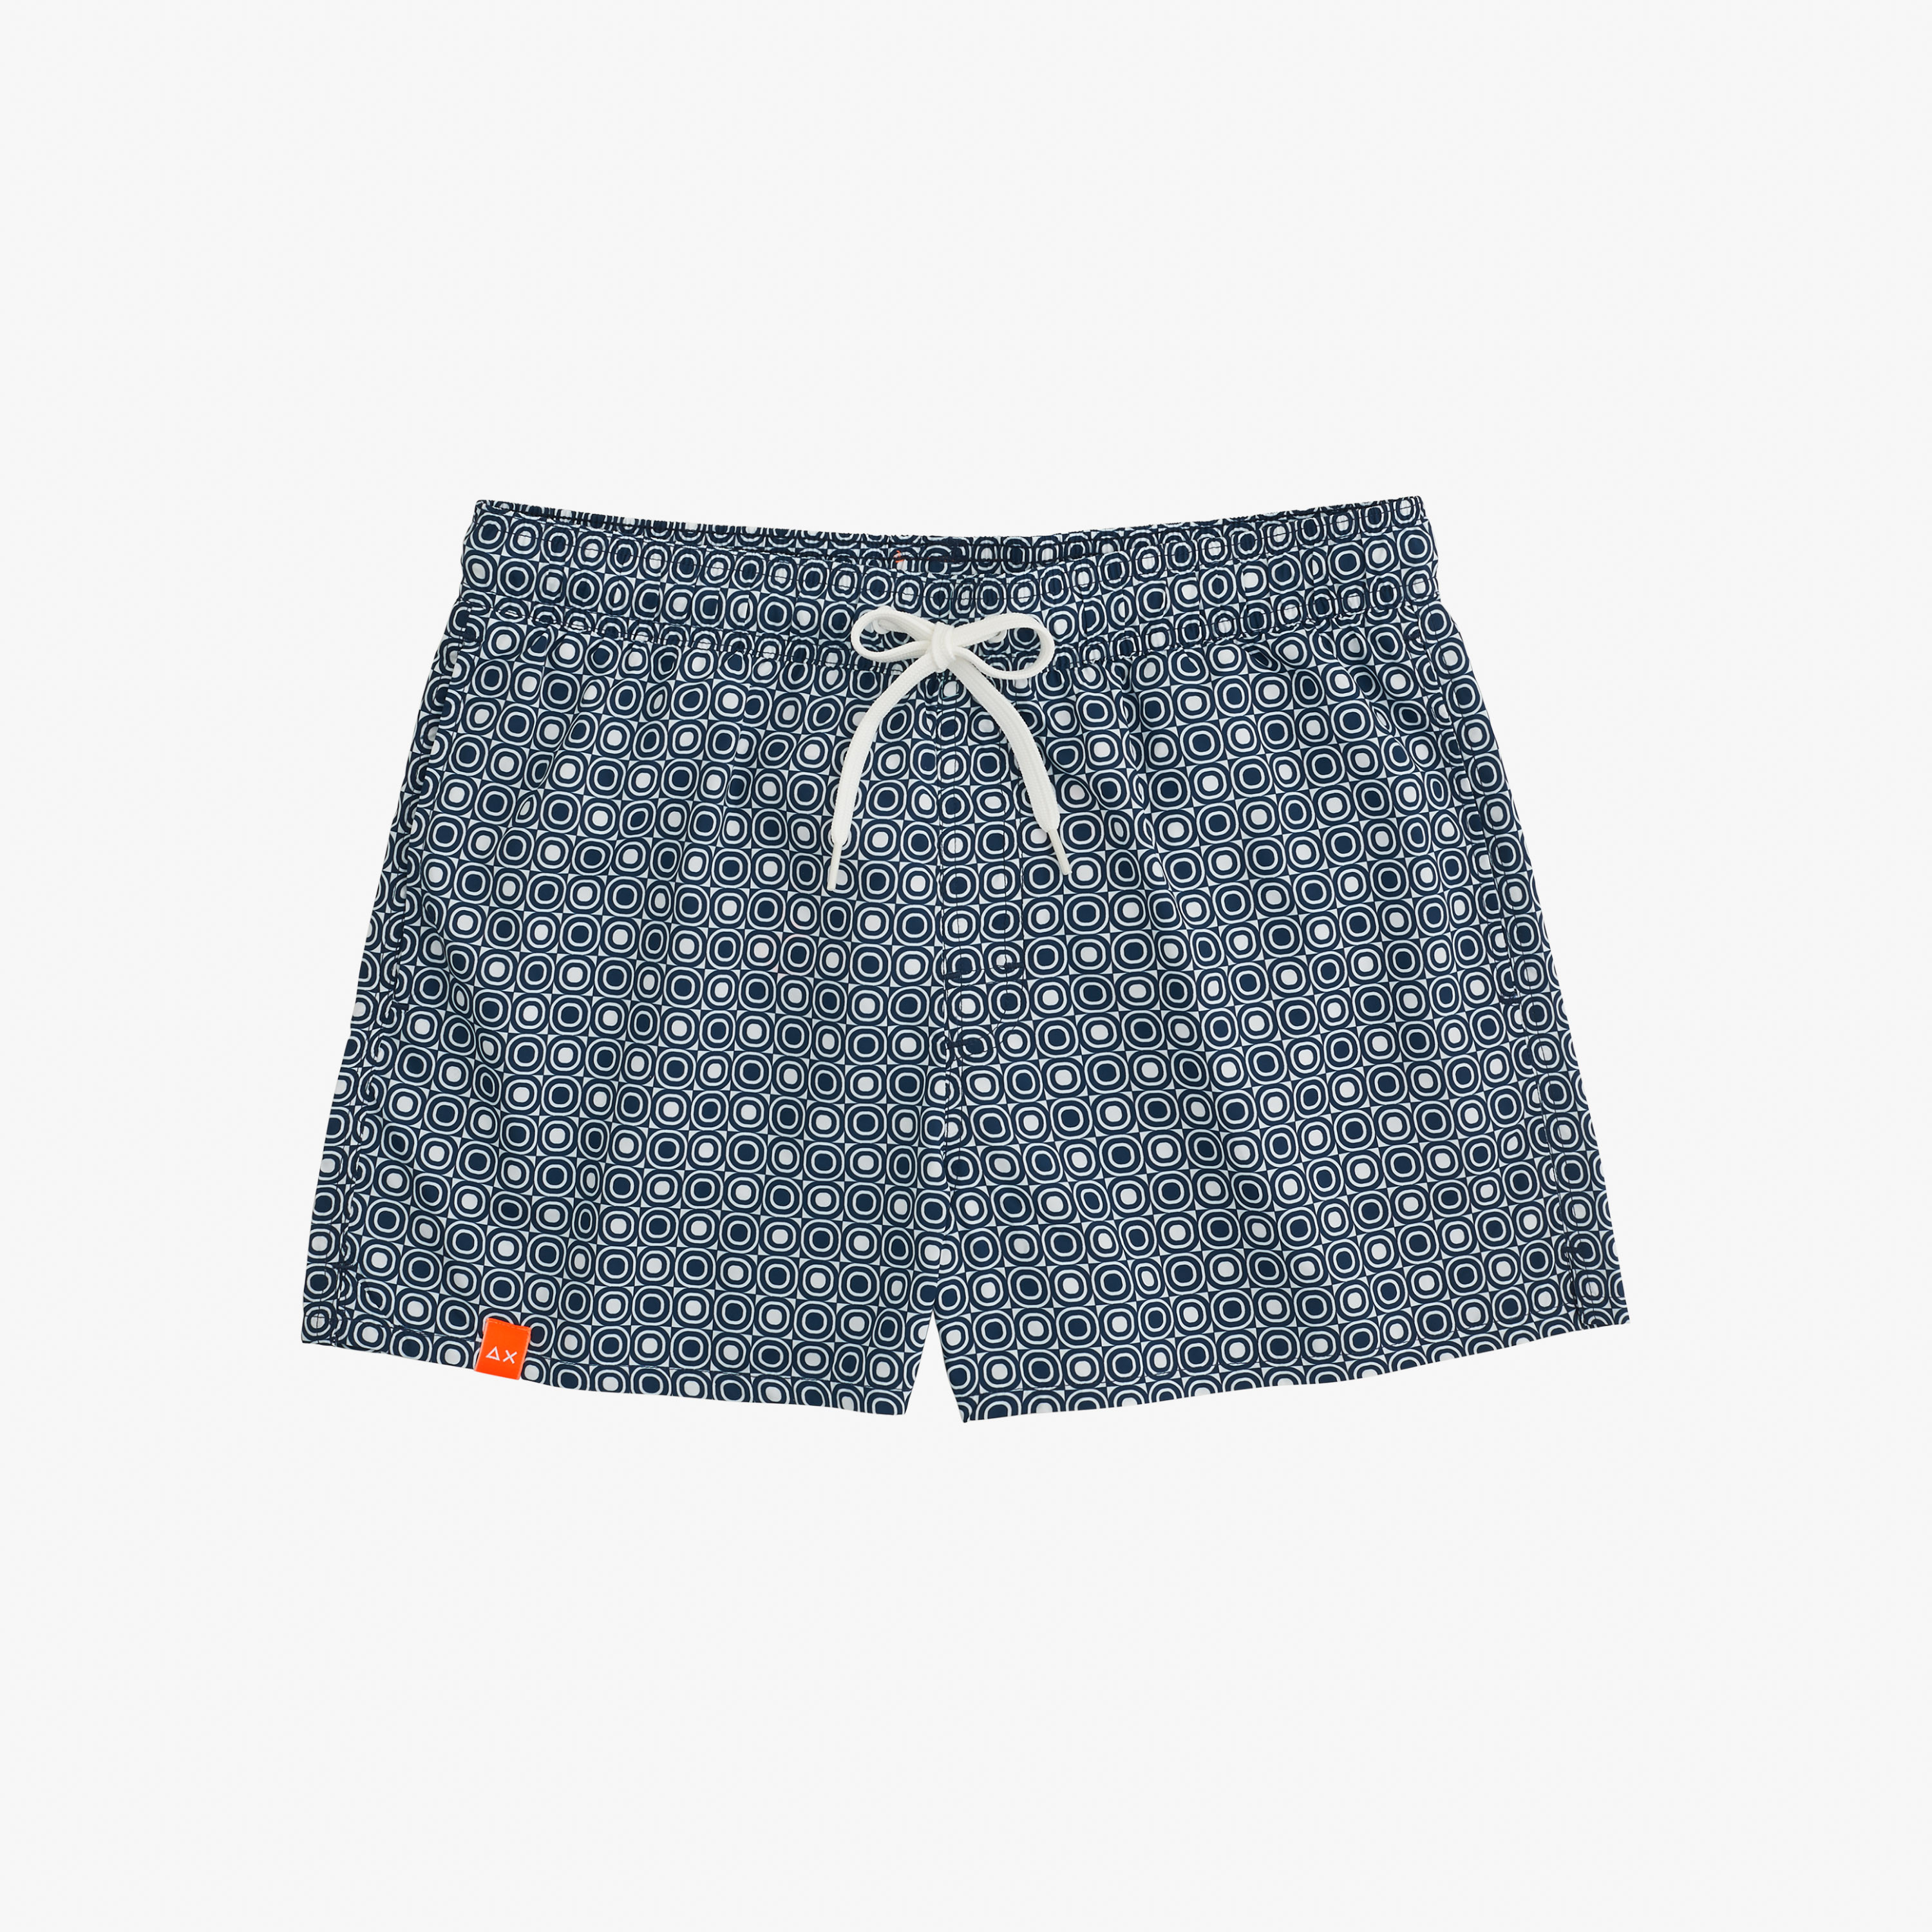 SWIM PANT FANCY MICRO PATTERN NAVY BLUE/BIANCO